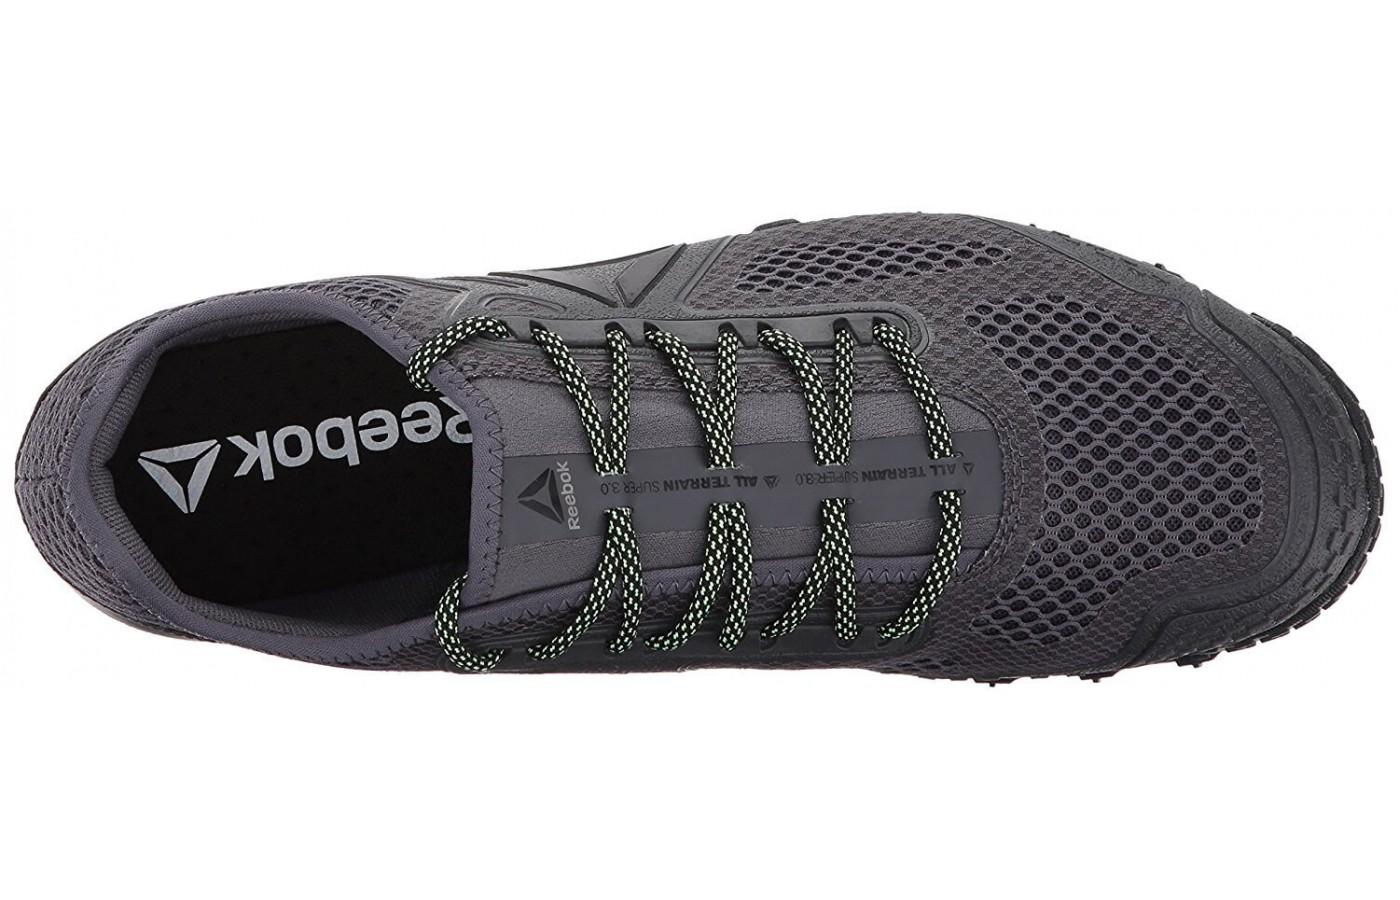 The unique lacing system add support and comfort.